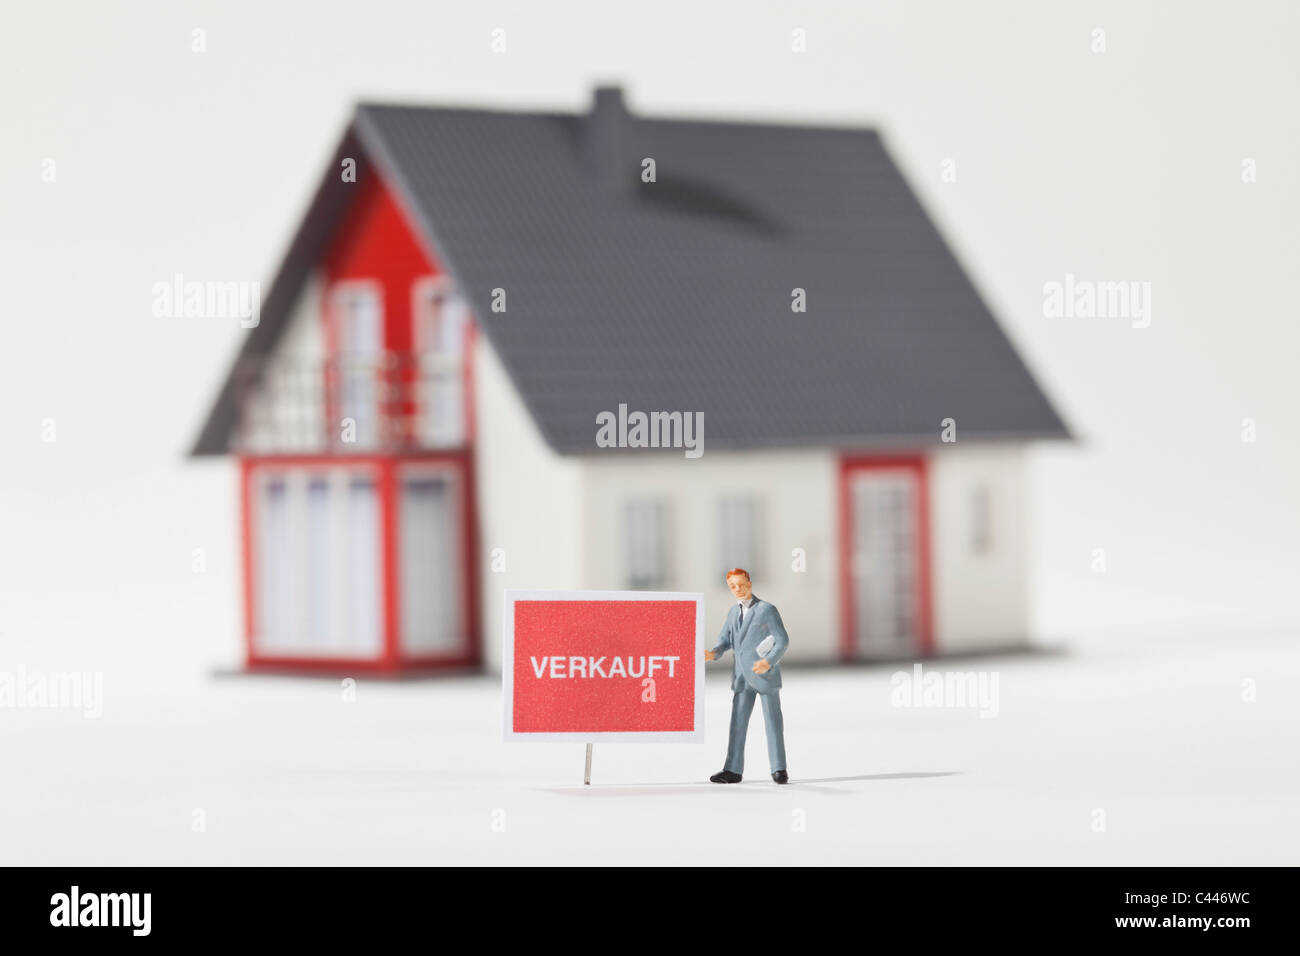 A miniature real estate agent figurine standing next to a VERKAUFT (sold in German) sign - Stock Image